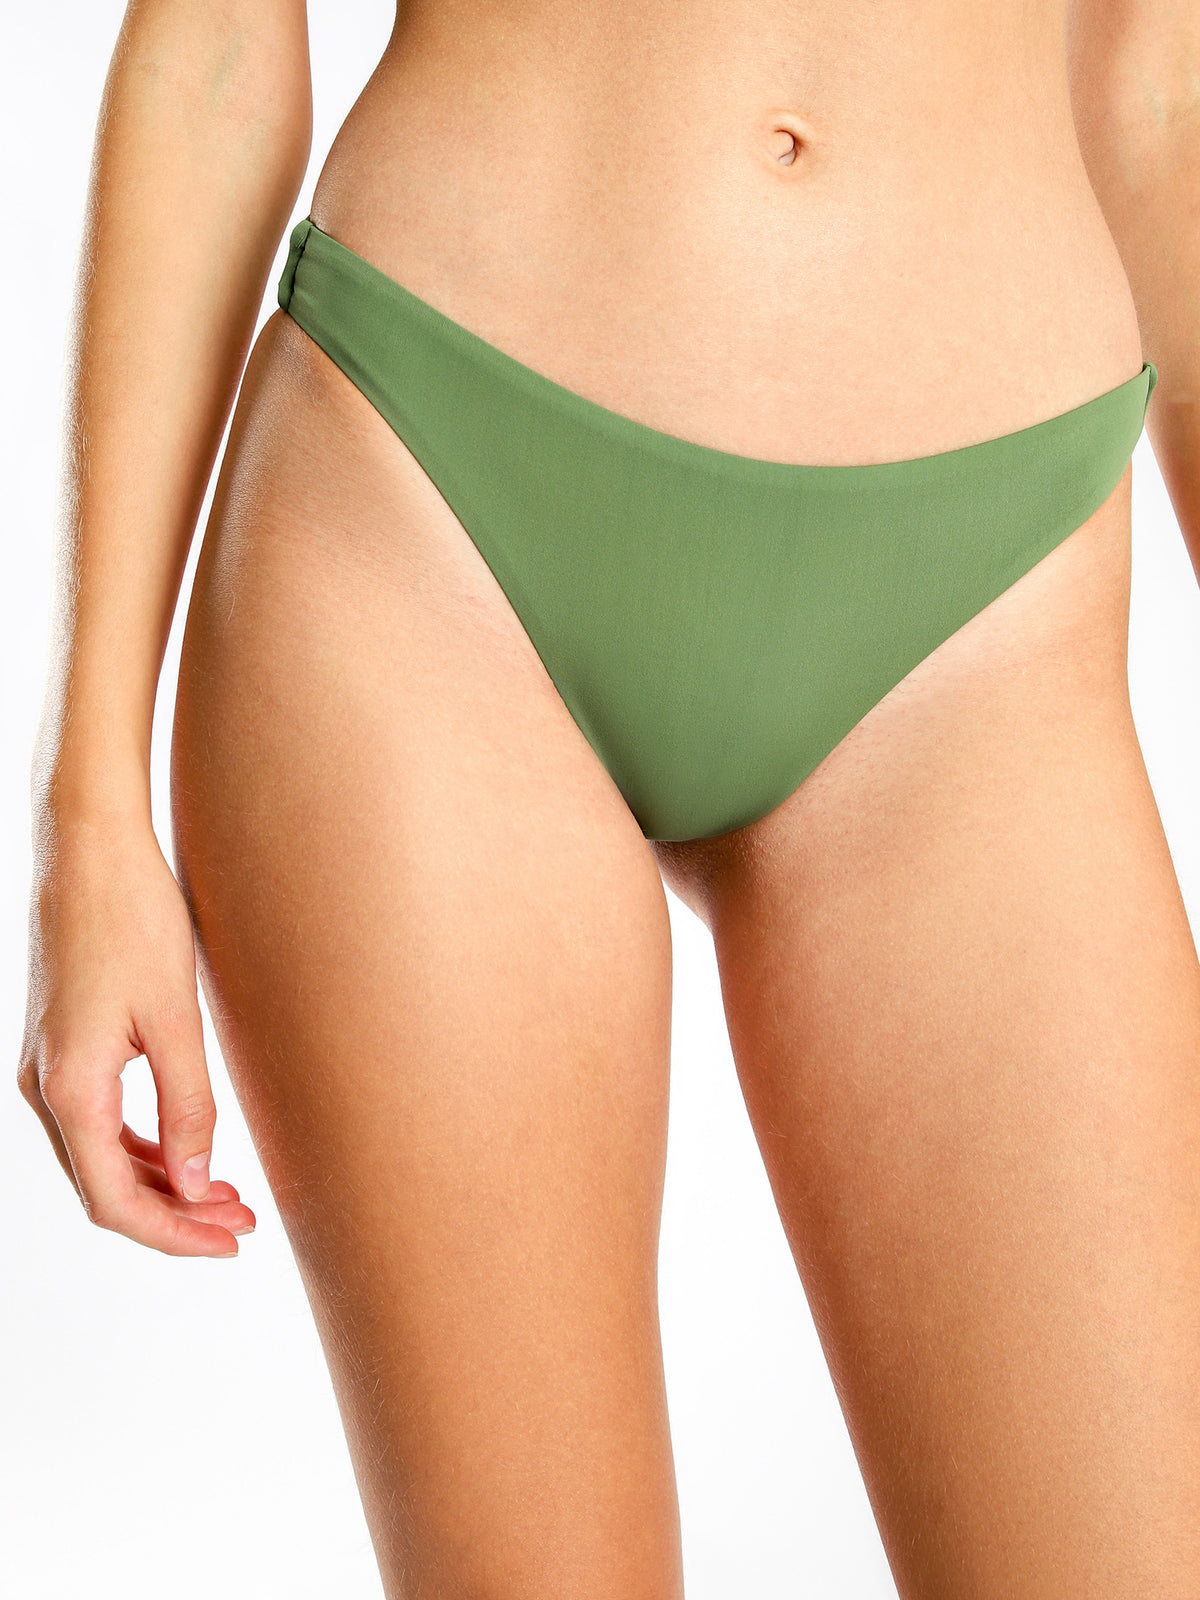 Cheeky Bikini Briefs in Khaki Green